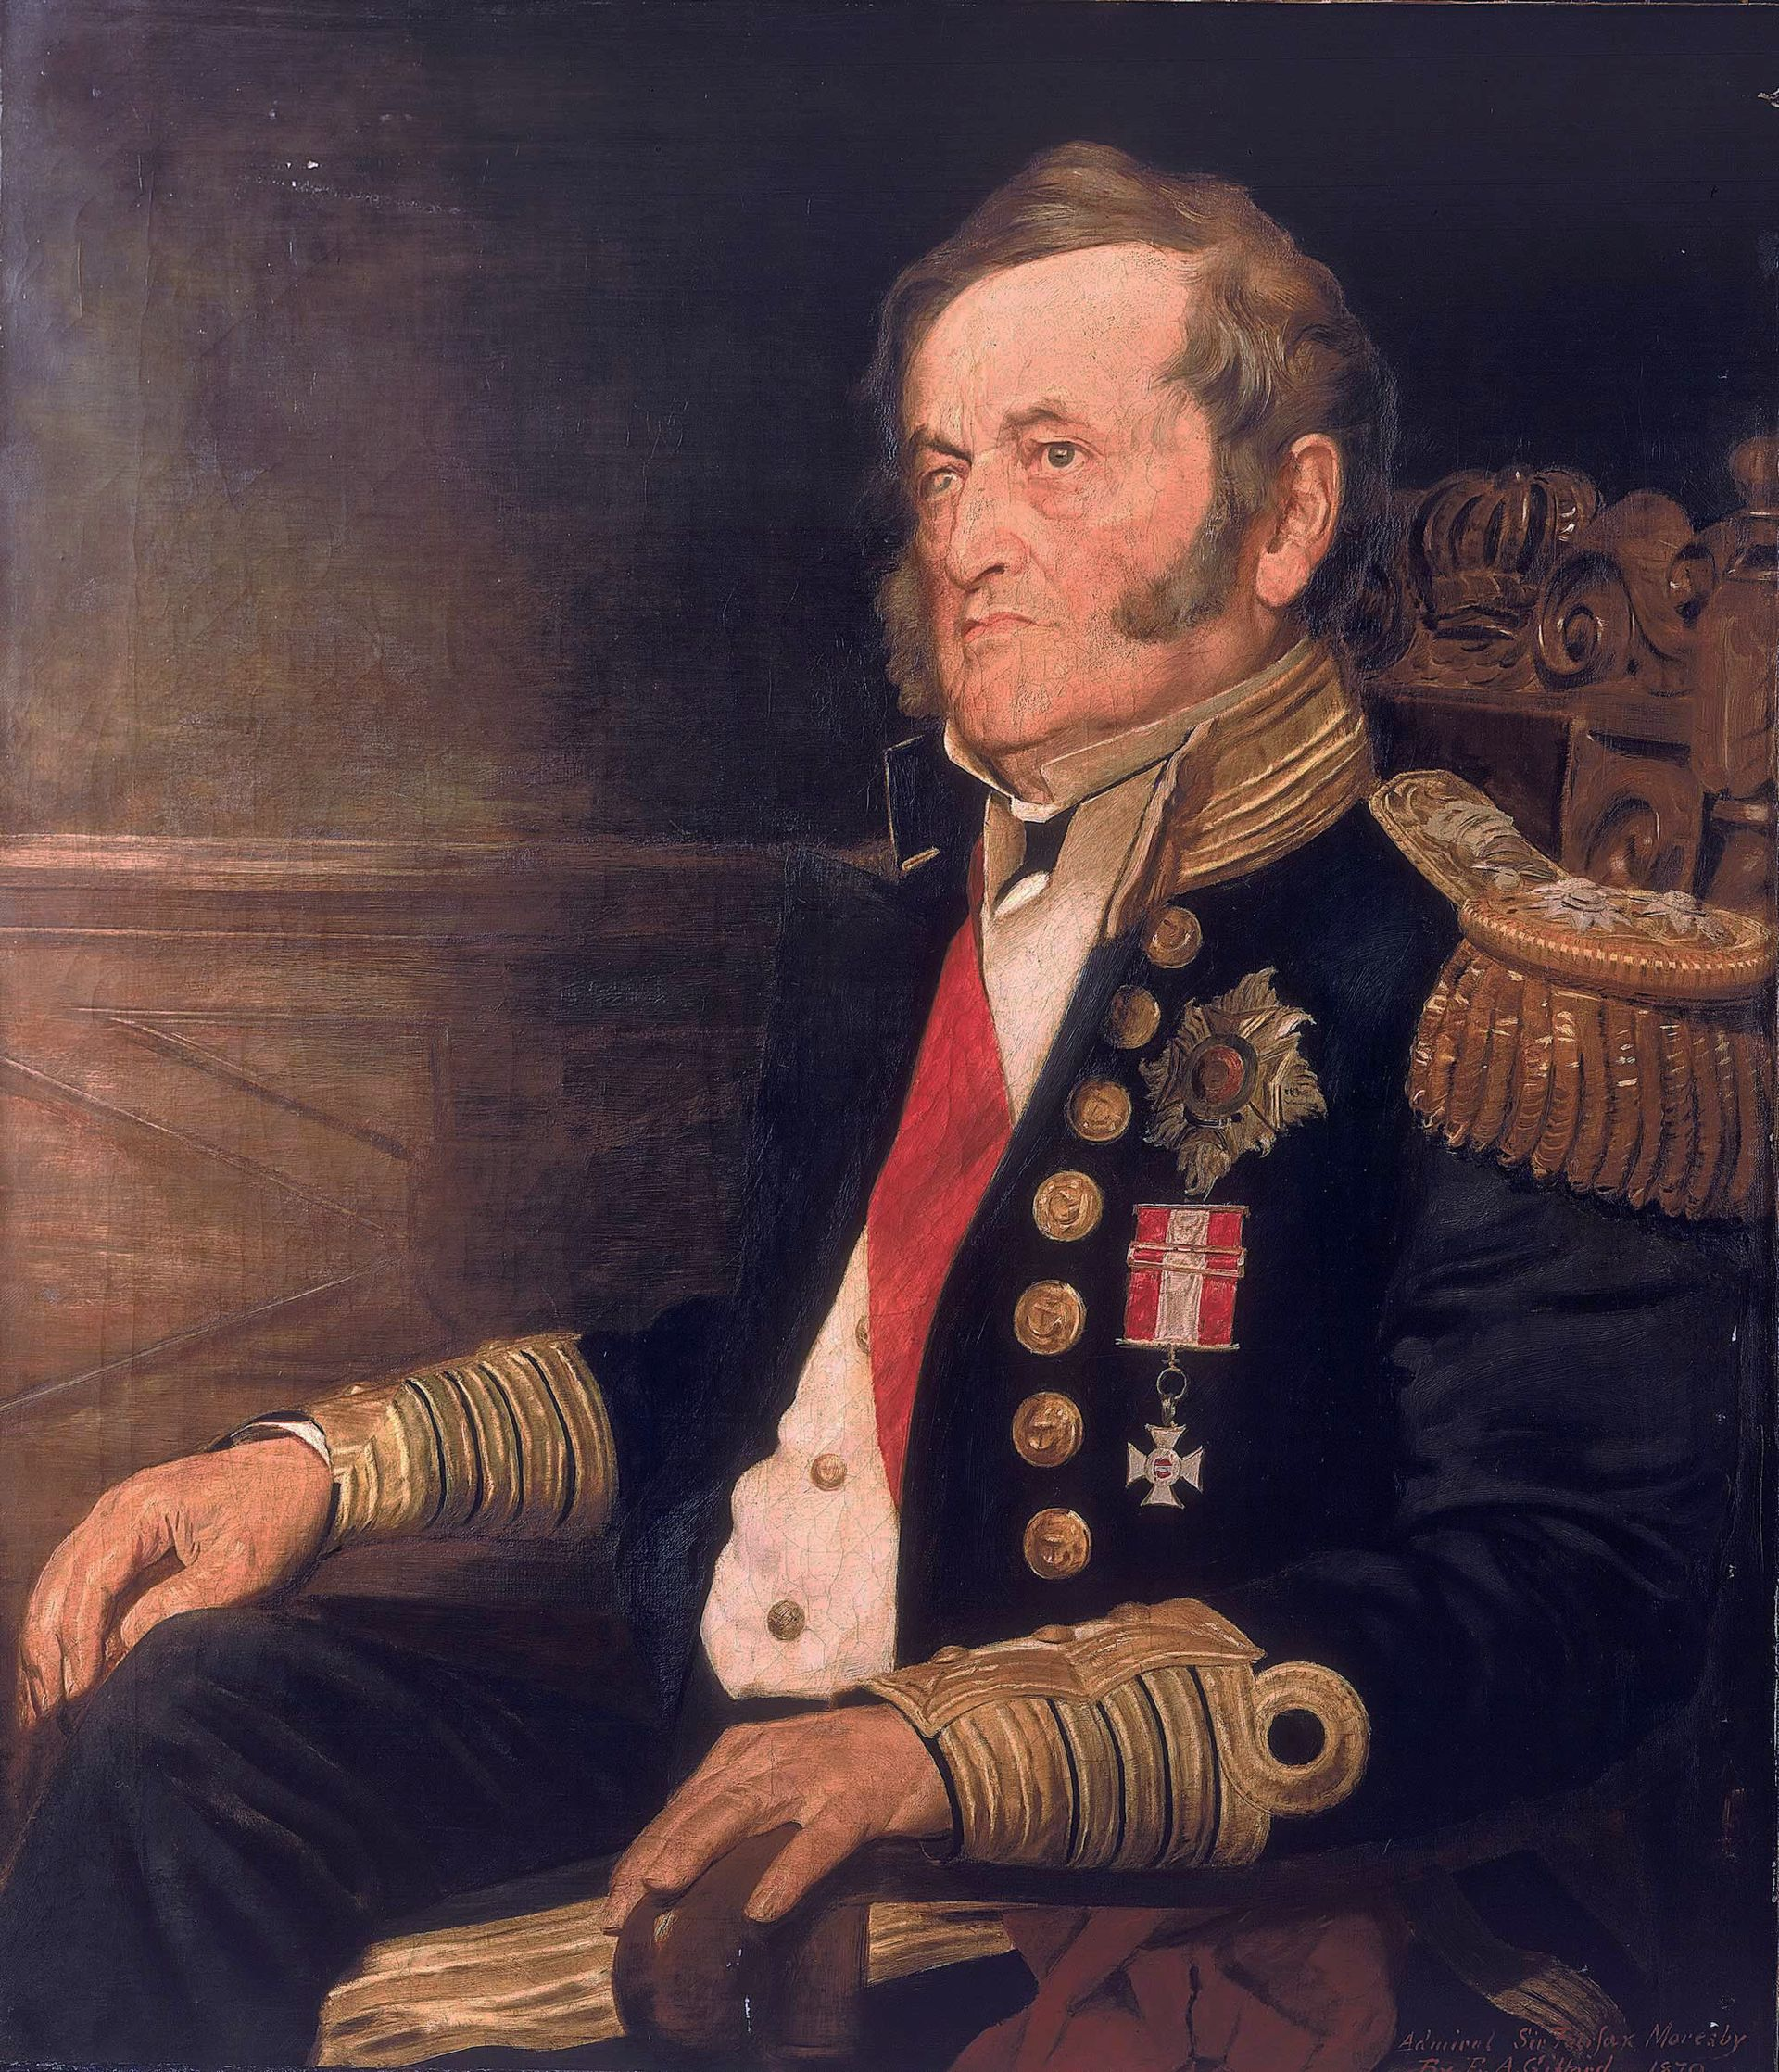 Captain Sir Fairfax Moresby